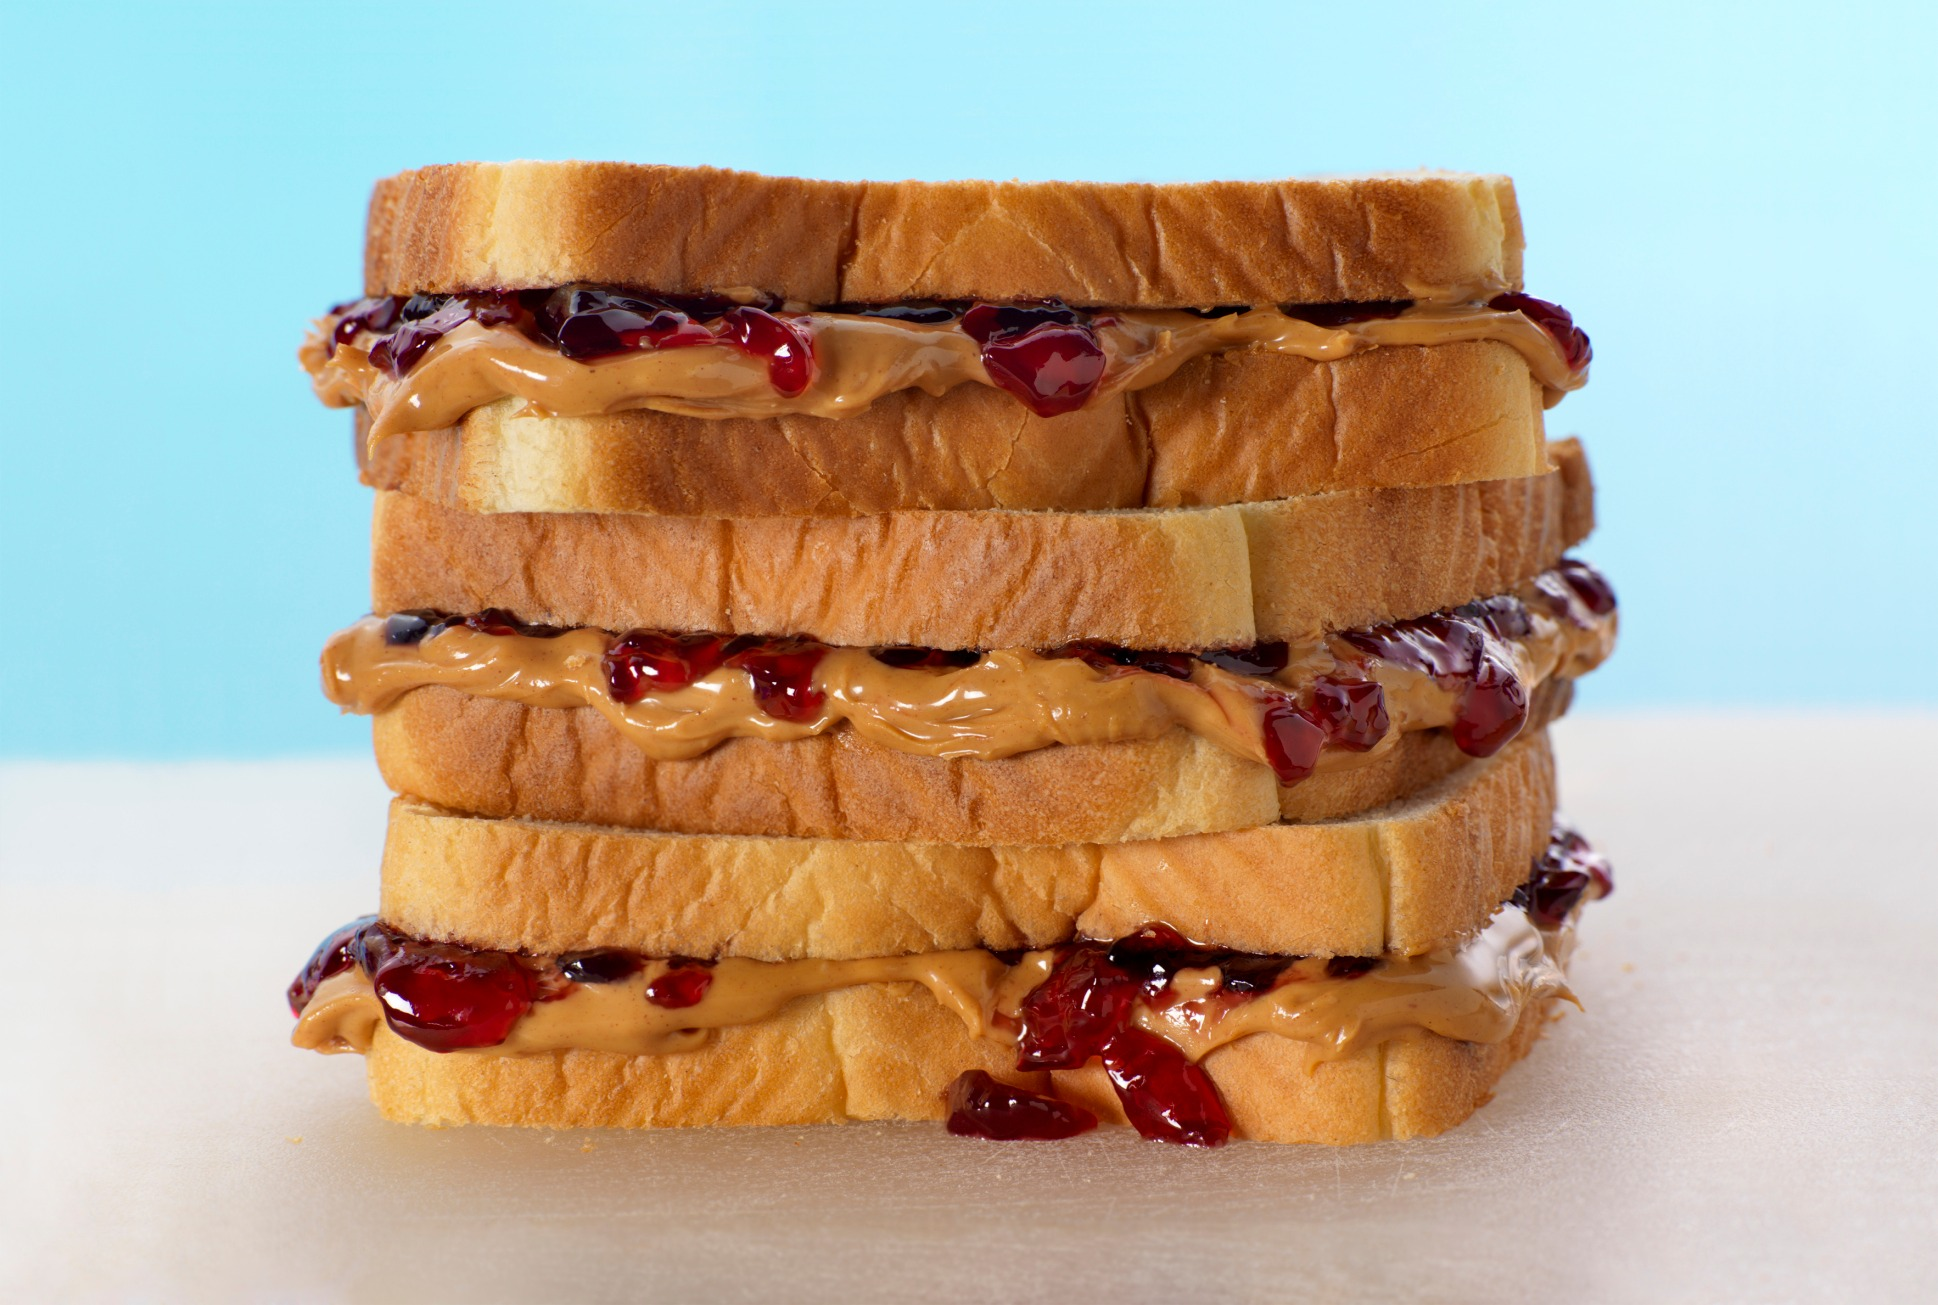 preparing a peanut butter and jelly sandwich From one peanut butter and jelly sandwich she taught families to plan and prepare special what are the benefits of peanut butter & jelly sandwiches.